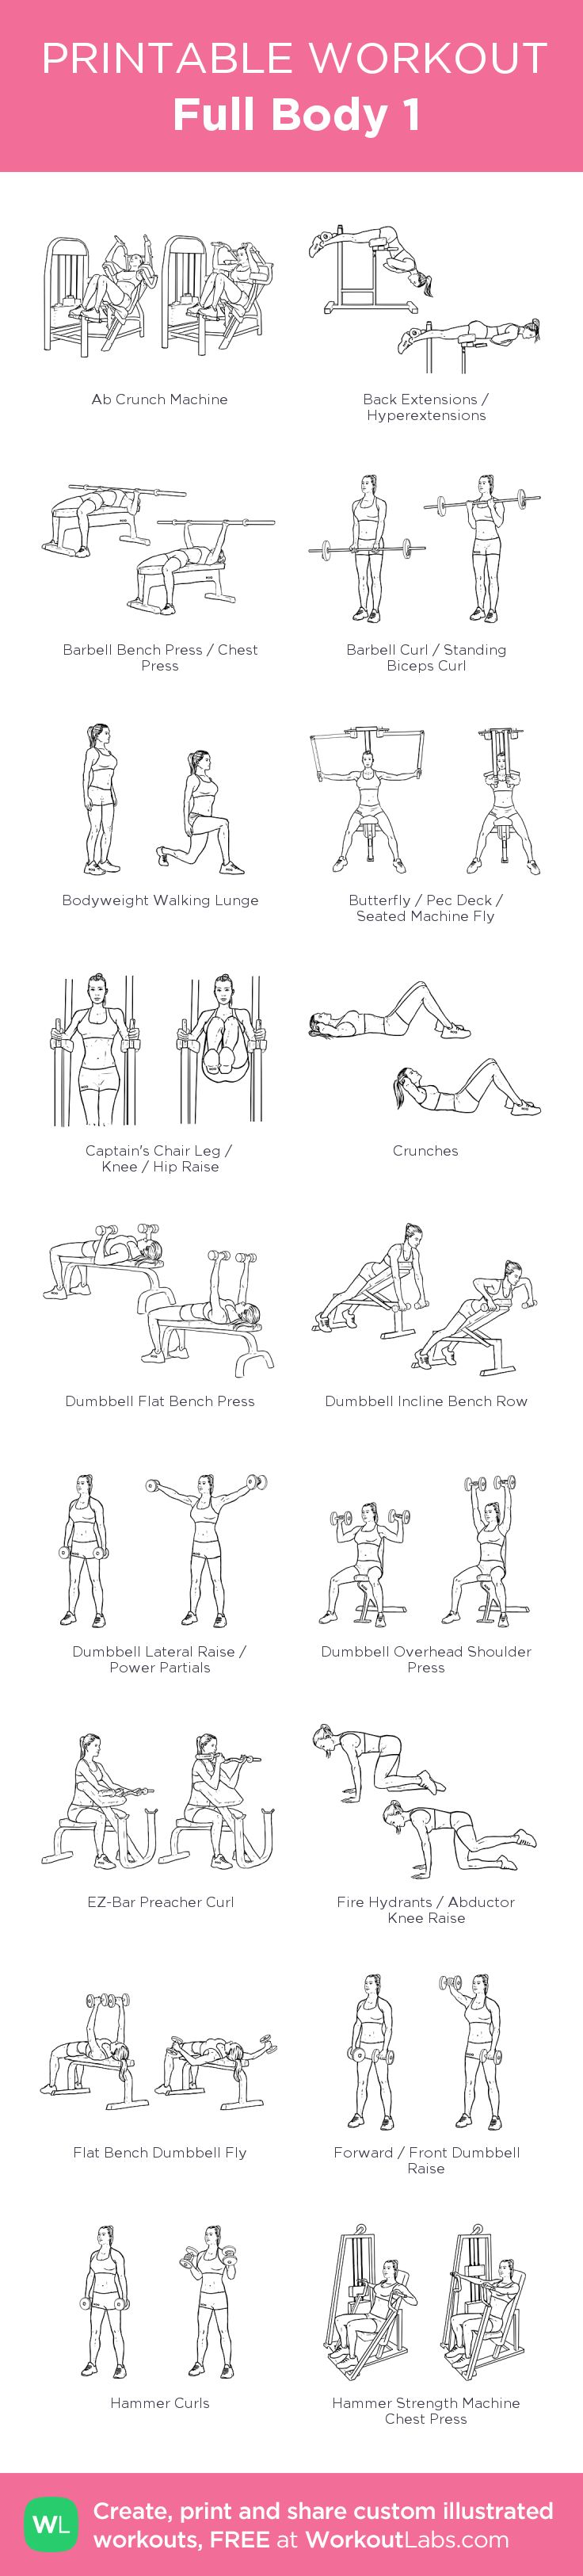 Full Body 1: my visual workout created at WorkoutLabs.com • Click through to customize and download as a FREE PDF! #customworkout                                                                                                                                                                                 More